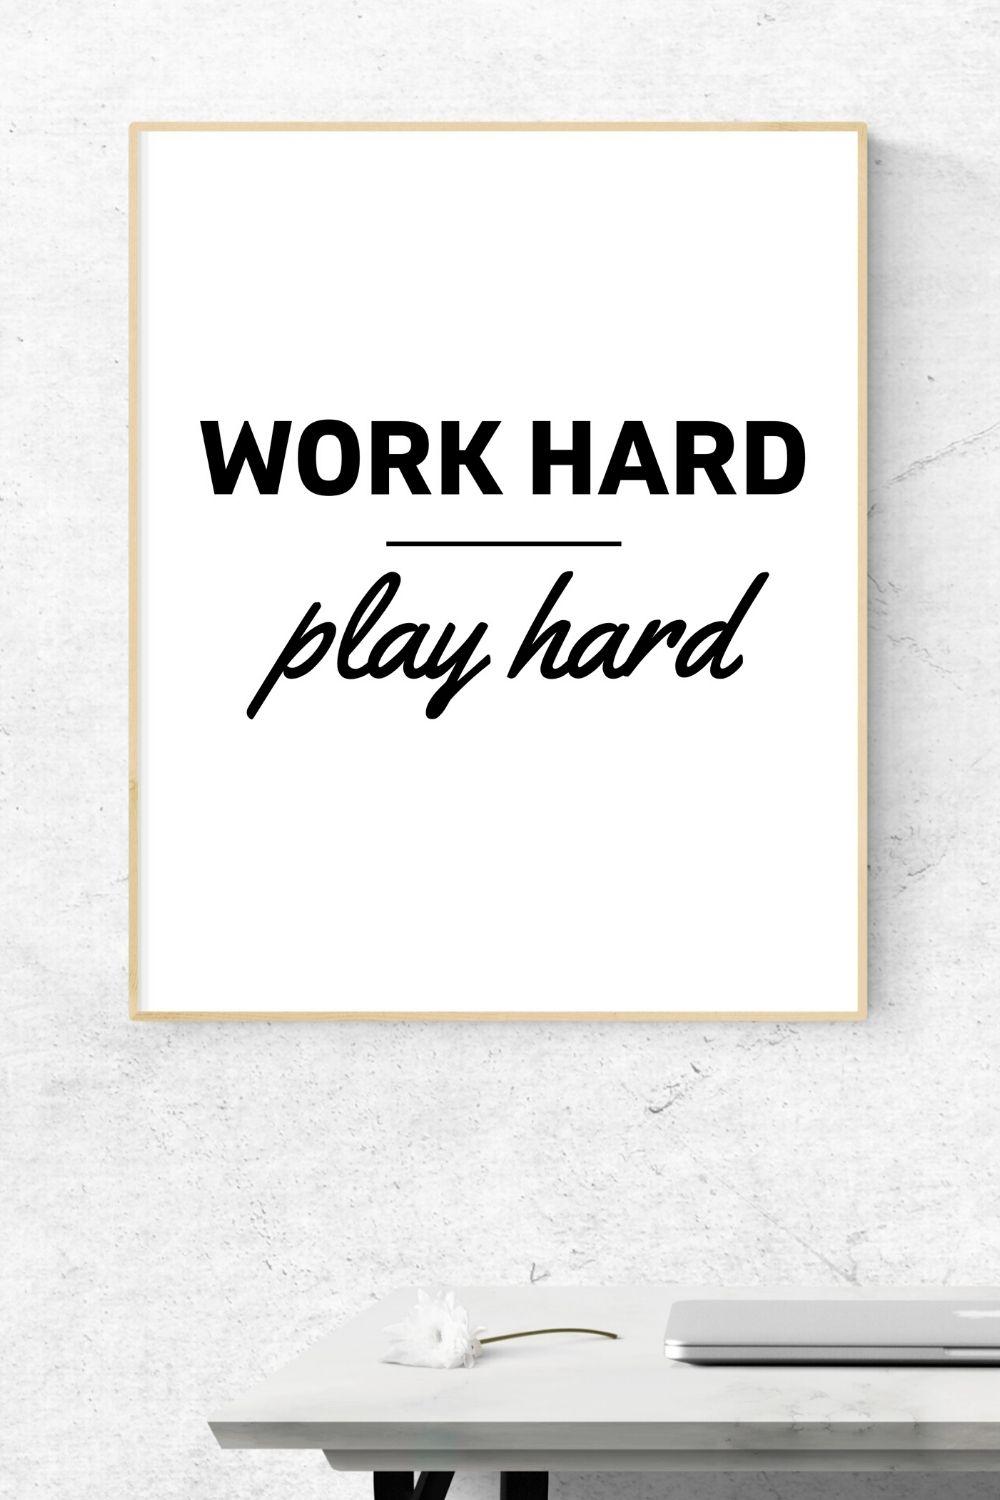 Work Hard Play Hard Motivational Inspirational Quote Etsy Wall Art Prints Printables Work Hard Play Hard Play Hard